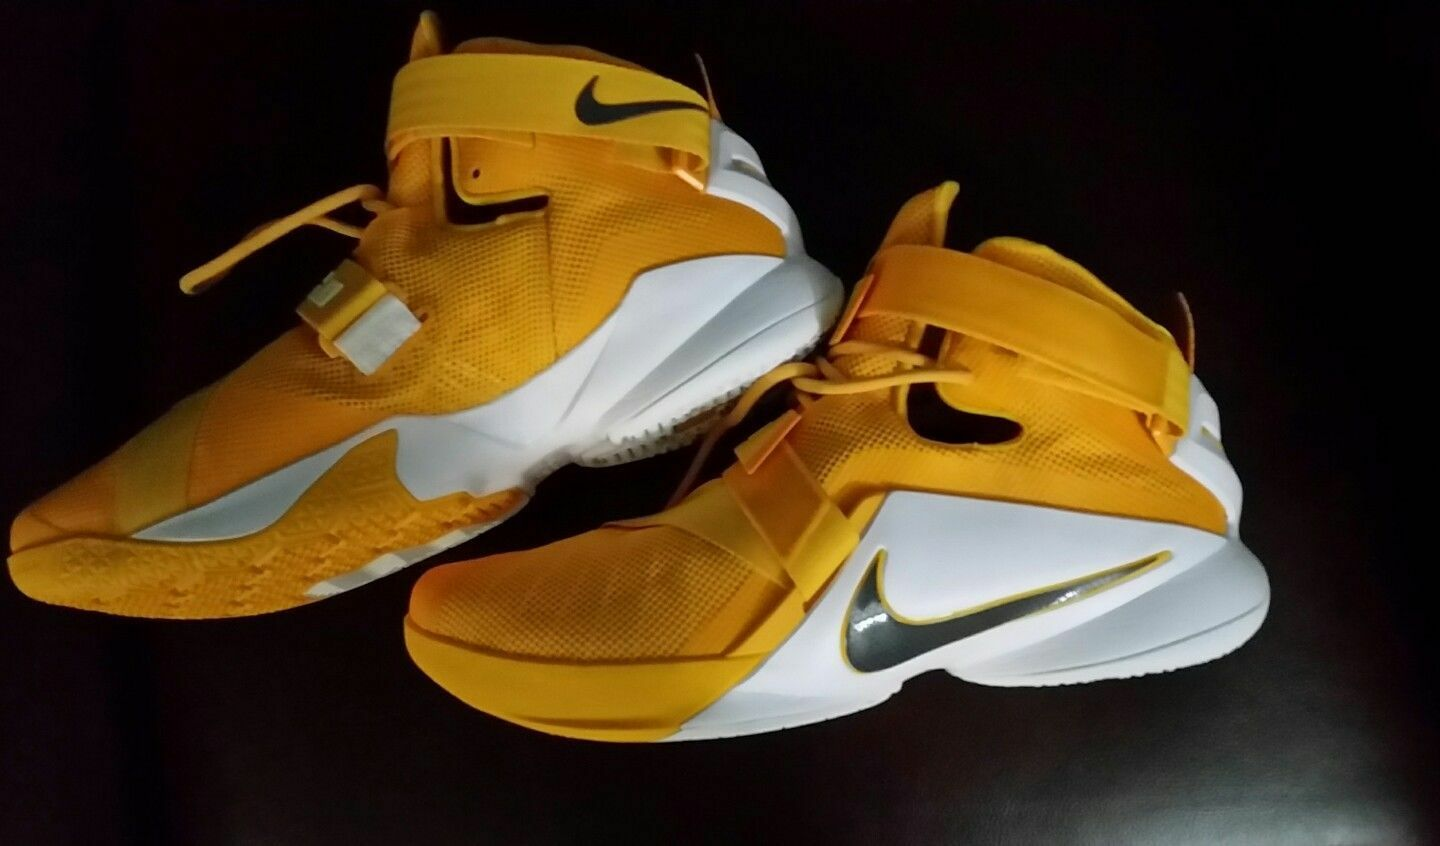 NIKE LEBRON SOLDIER IX TB MEN'S BASKETBALL SHOES 16.5 GOLD/RARE NEW